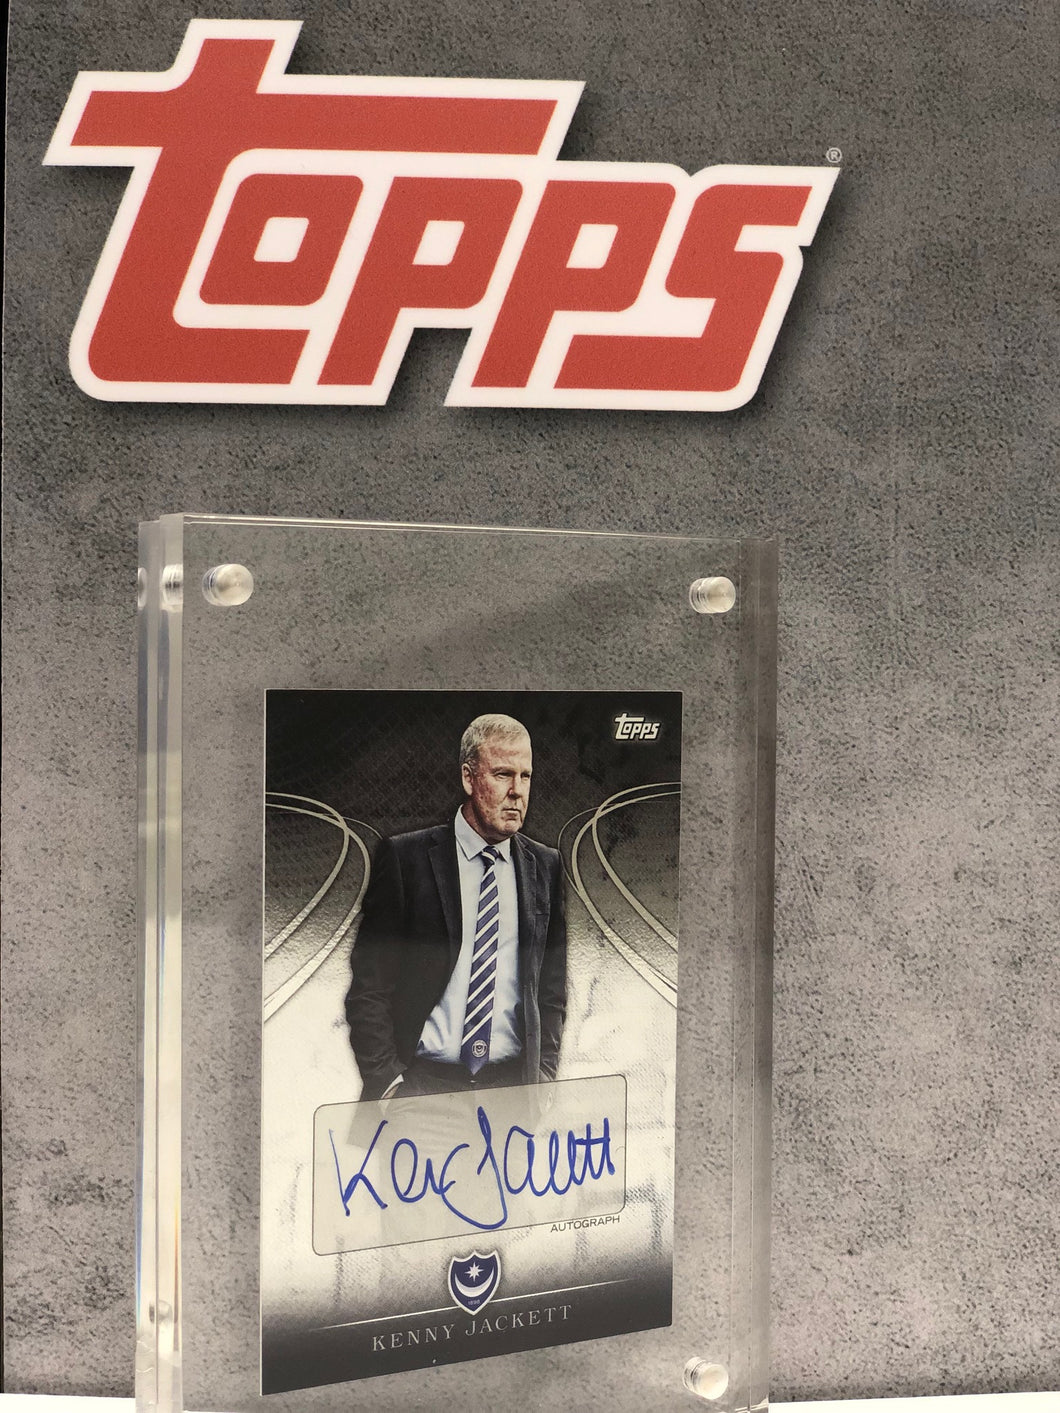 Kenny Jackett Framed and Signed Topps Card